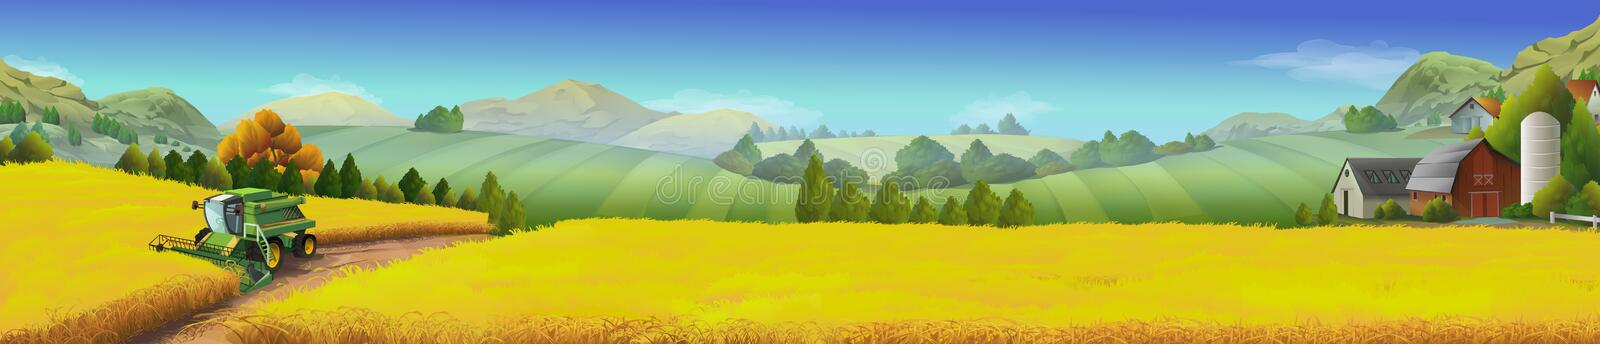 Champ de blé, paysage rural illustration stock